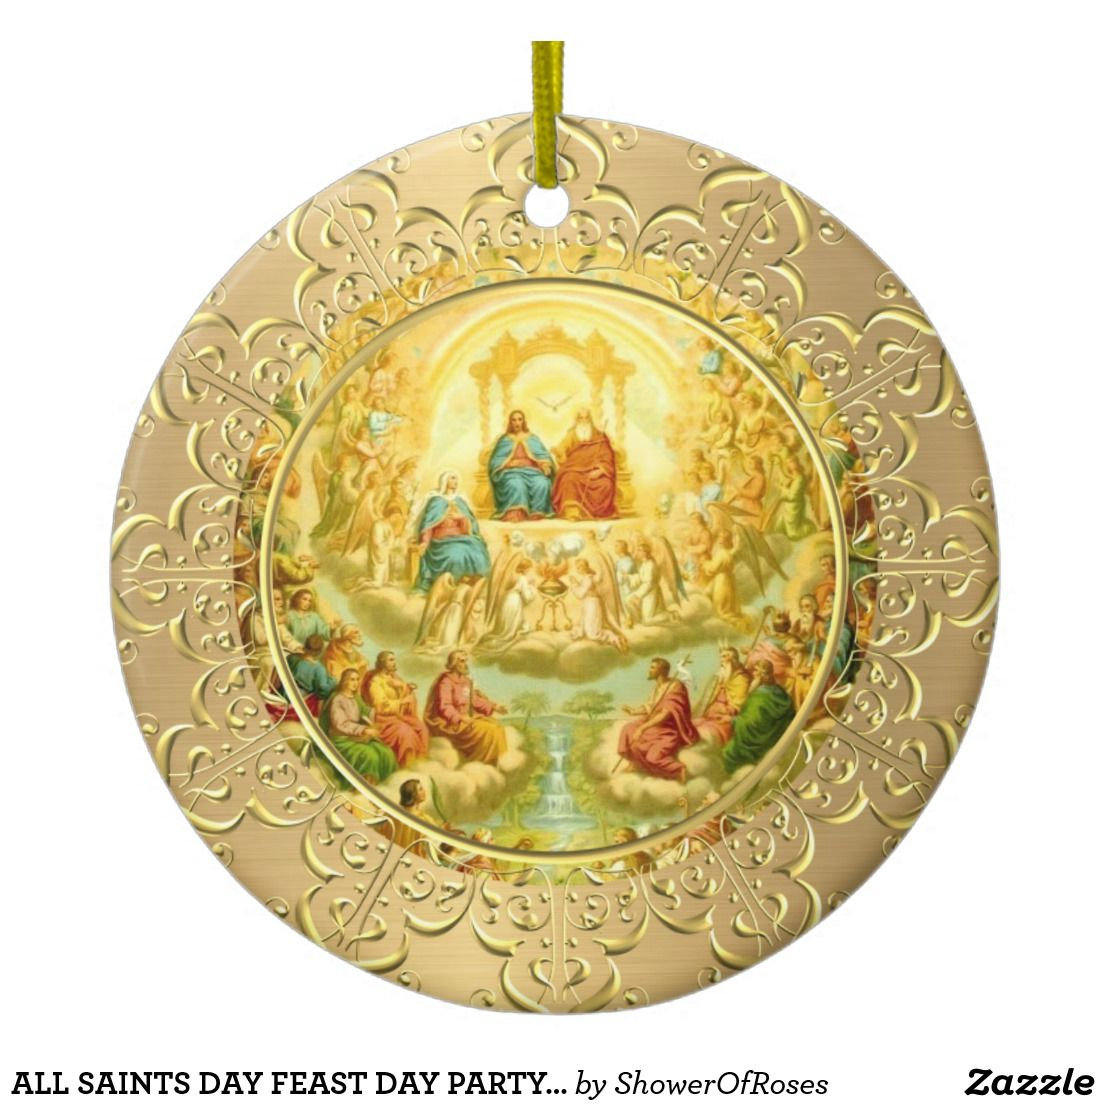 All Saints Day Feast Day Party Celebration Ceramic